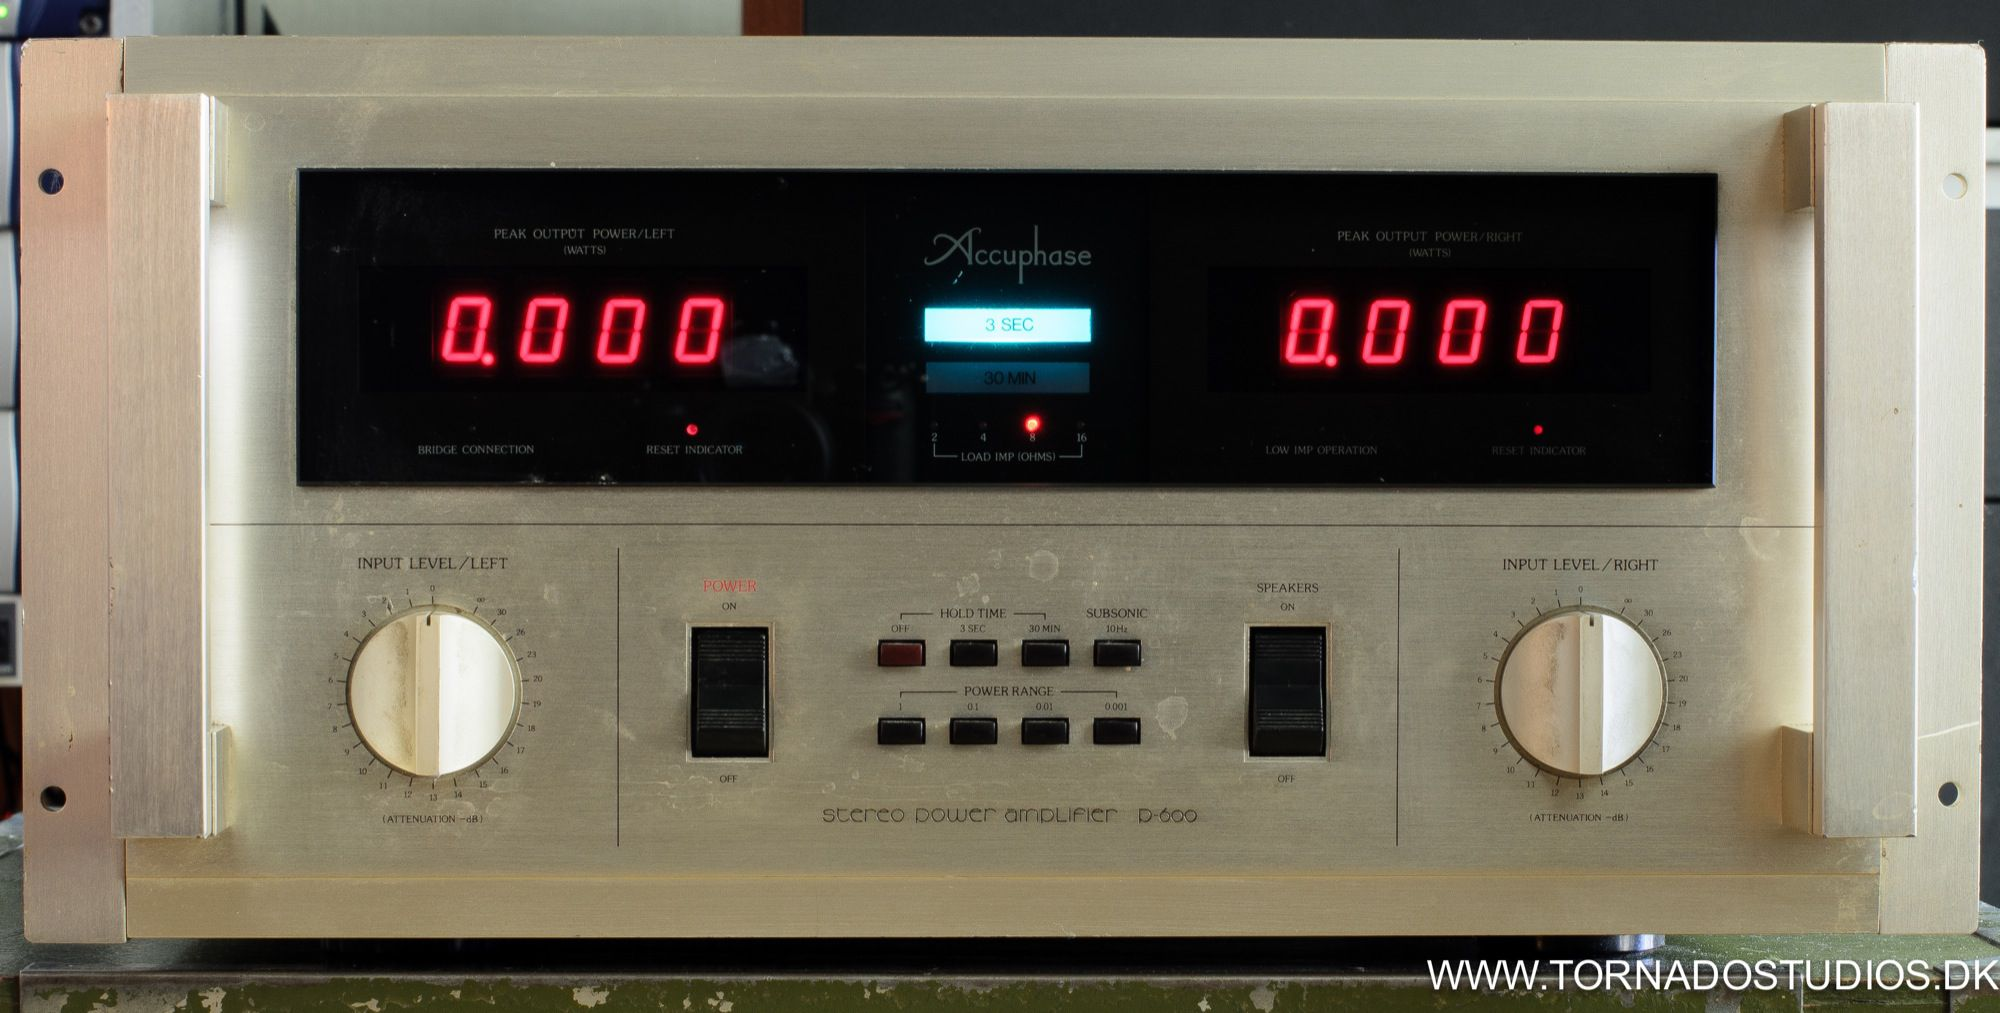 Yamaha NS-10, Accuphase D600 amp